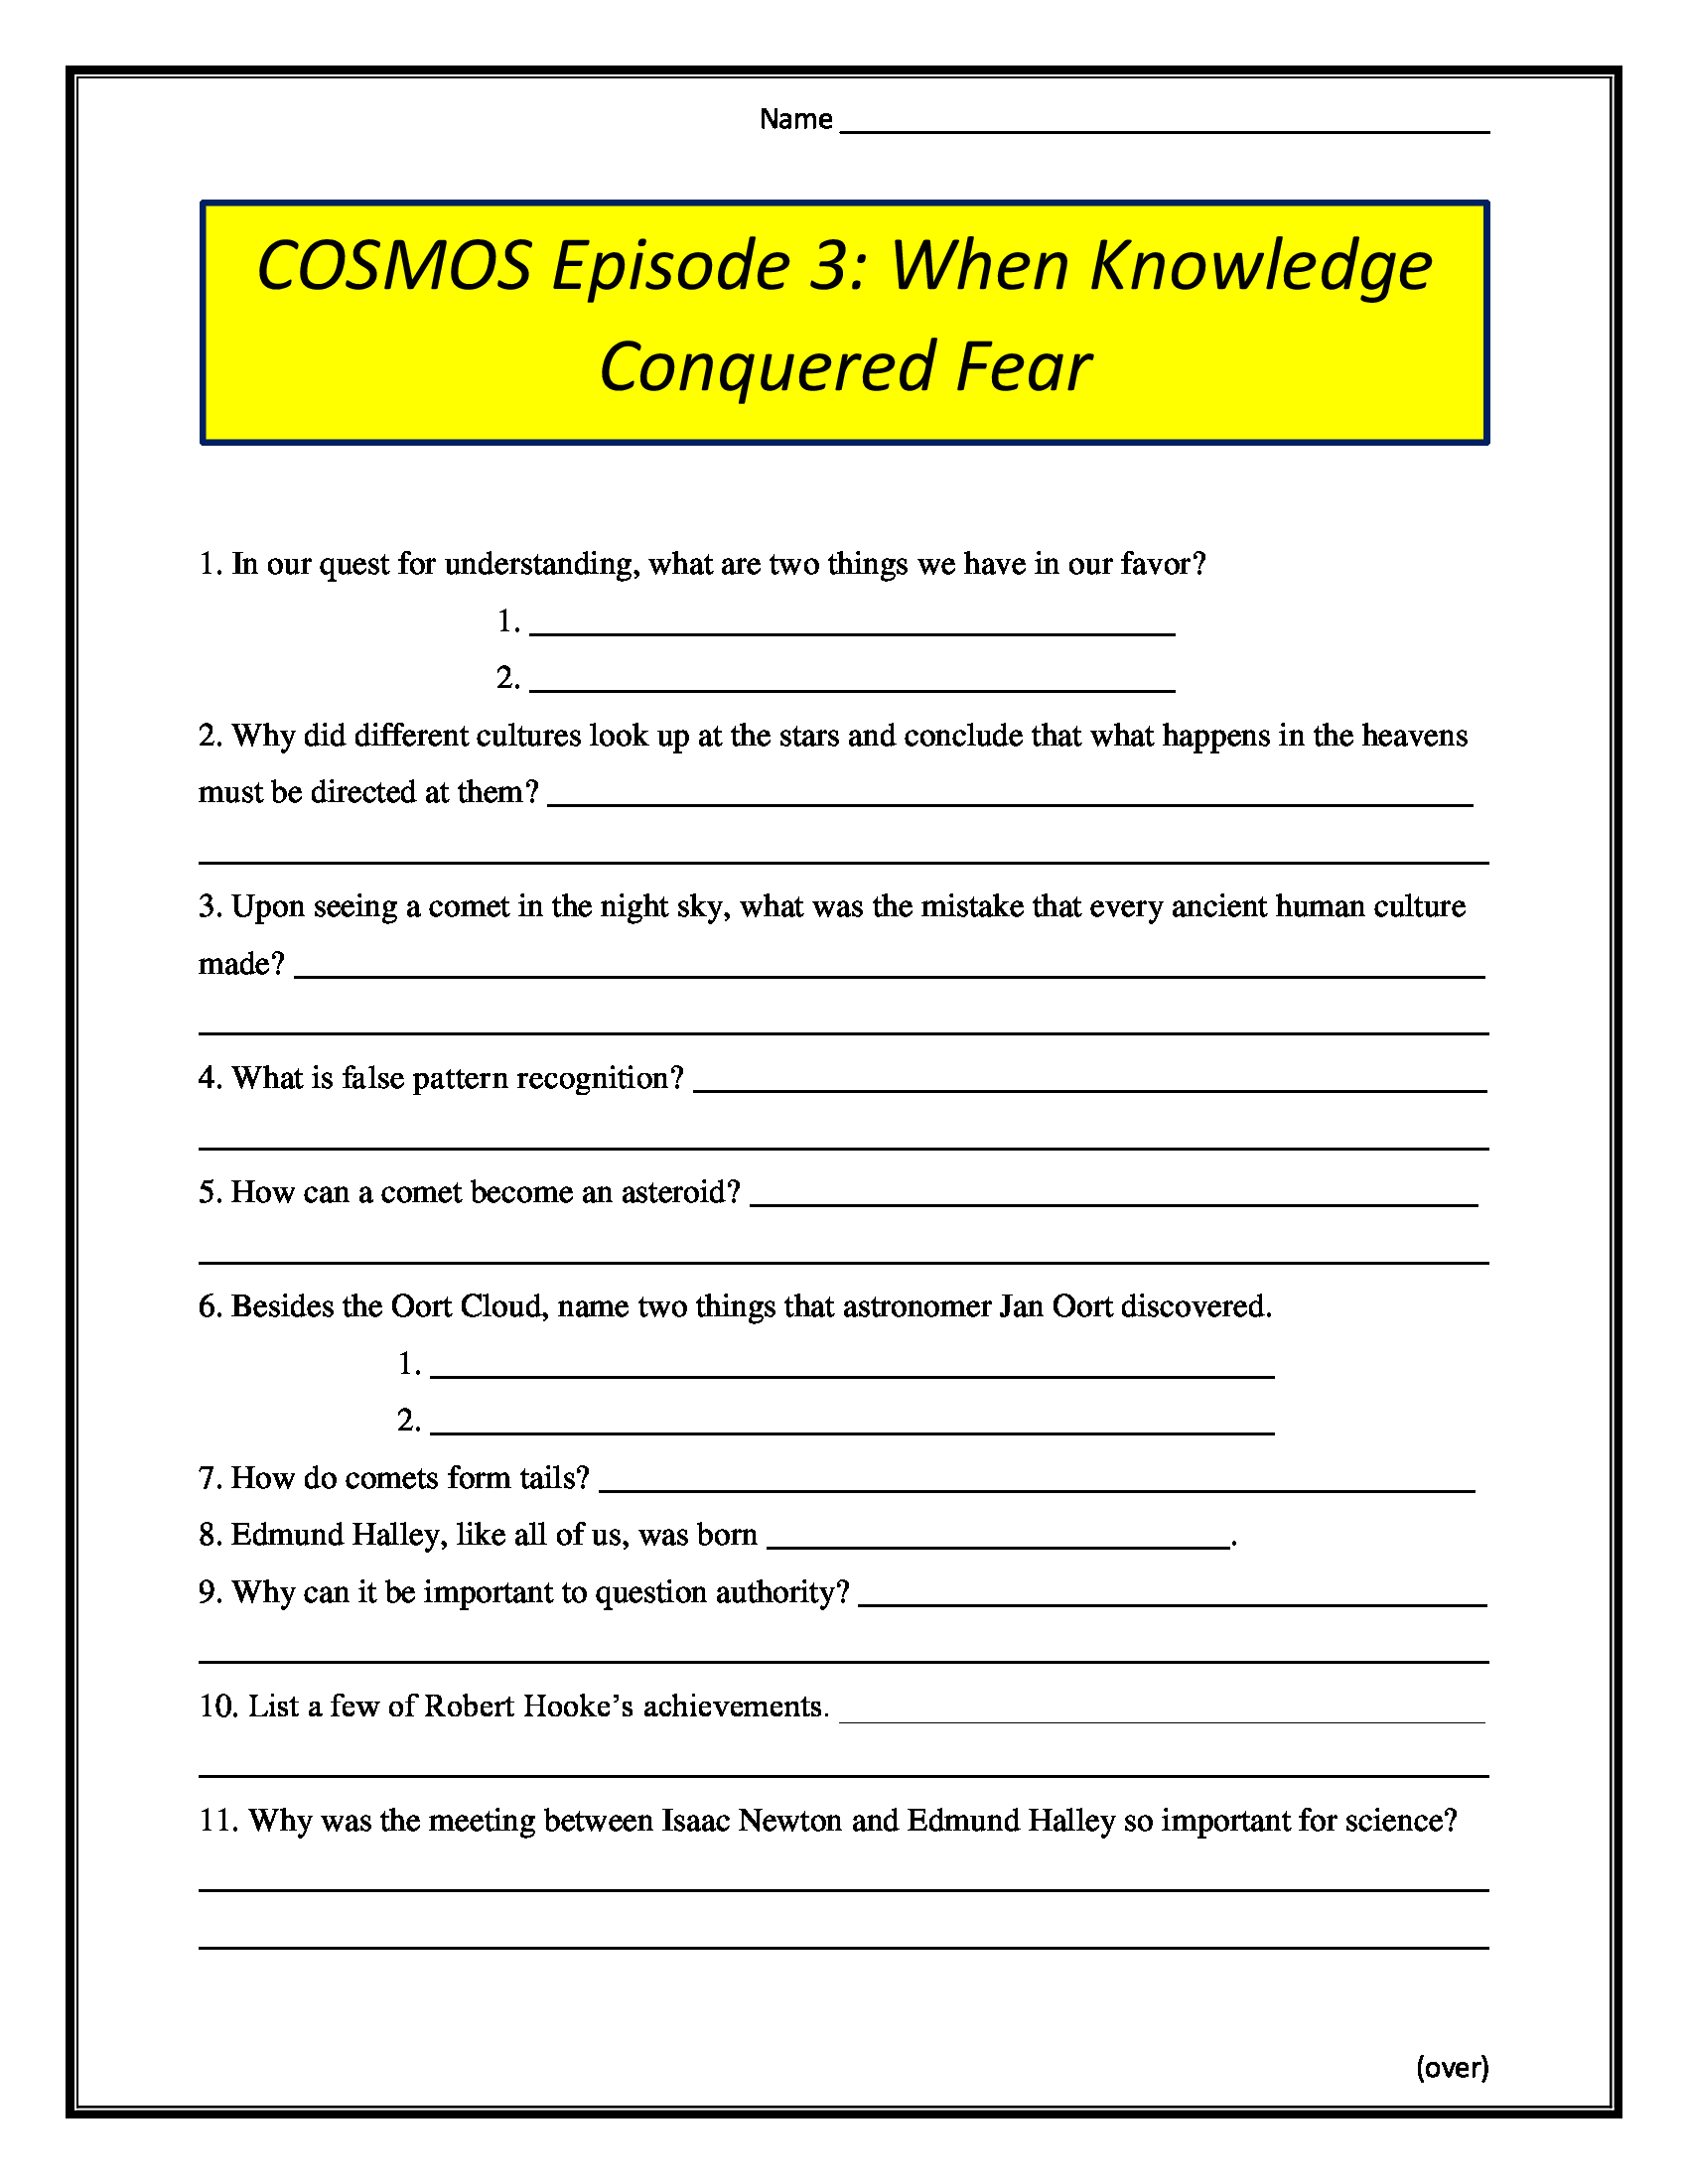 Cosmos Episode 3 When Knowledge Conquered Fear Worksheet